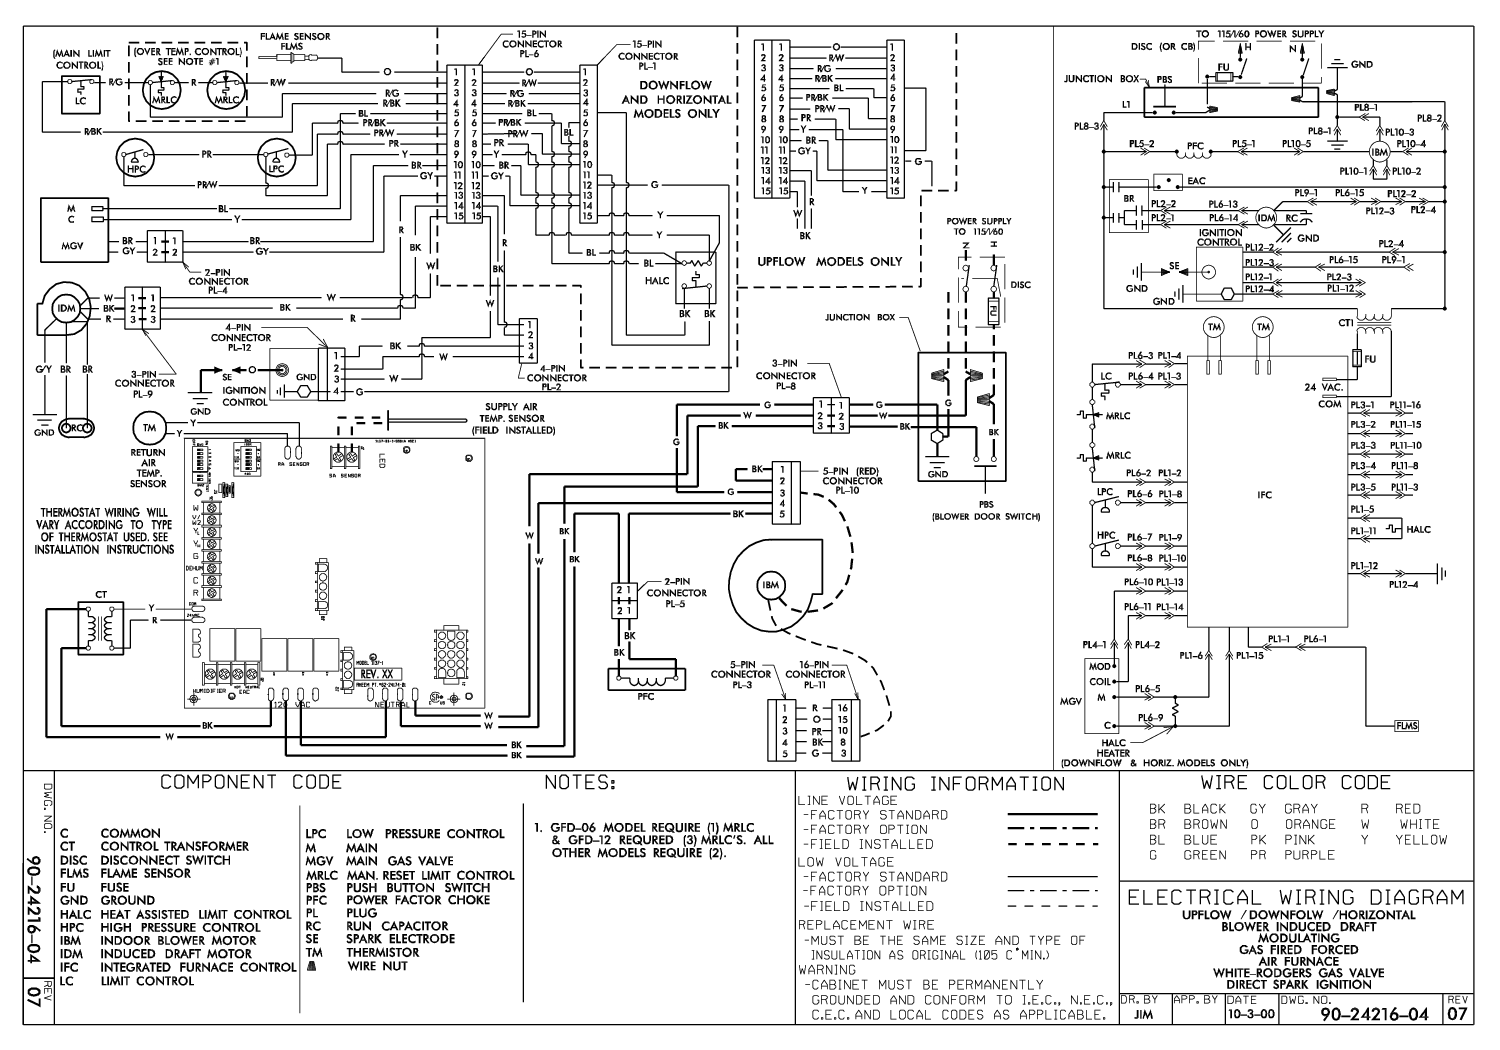 Lennox Furnace Thermostat Wiring Diagram  U2013 Wiring Diagram